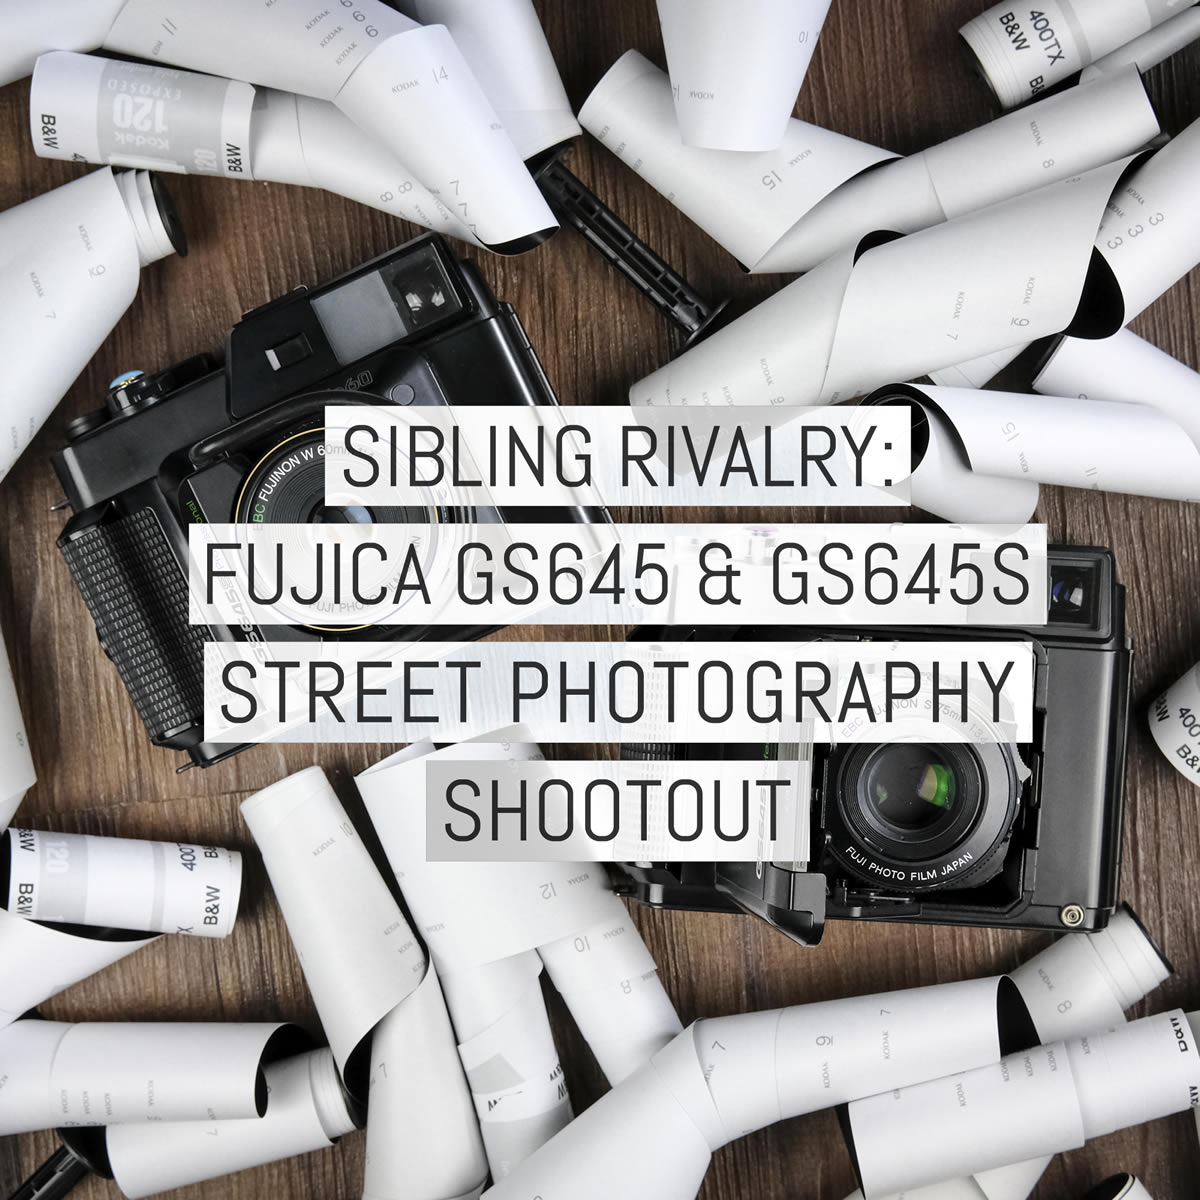 Sibling rivalry: Fujica GS645 & GS645S street photography shootout